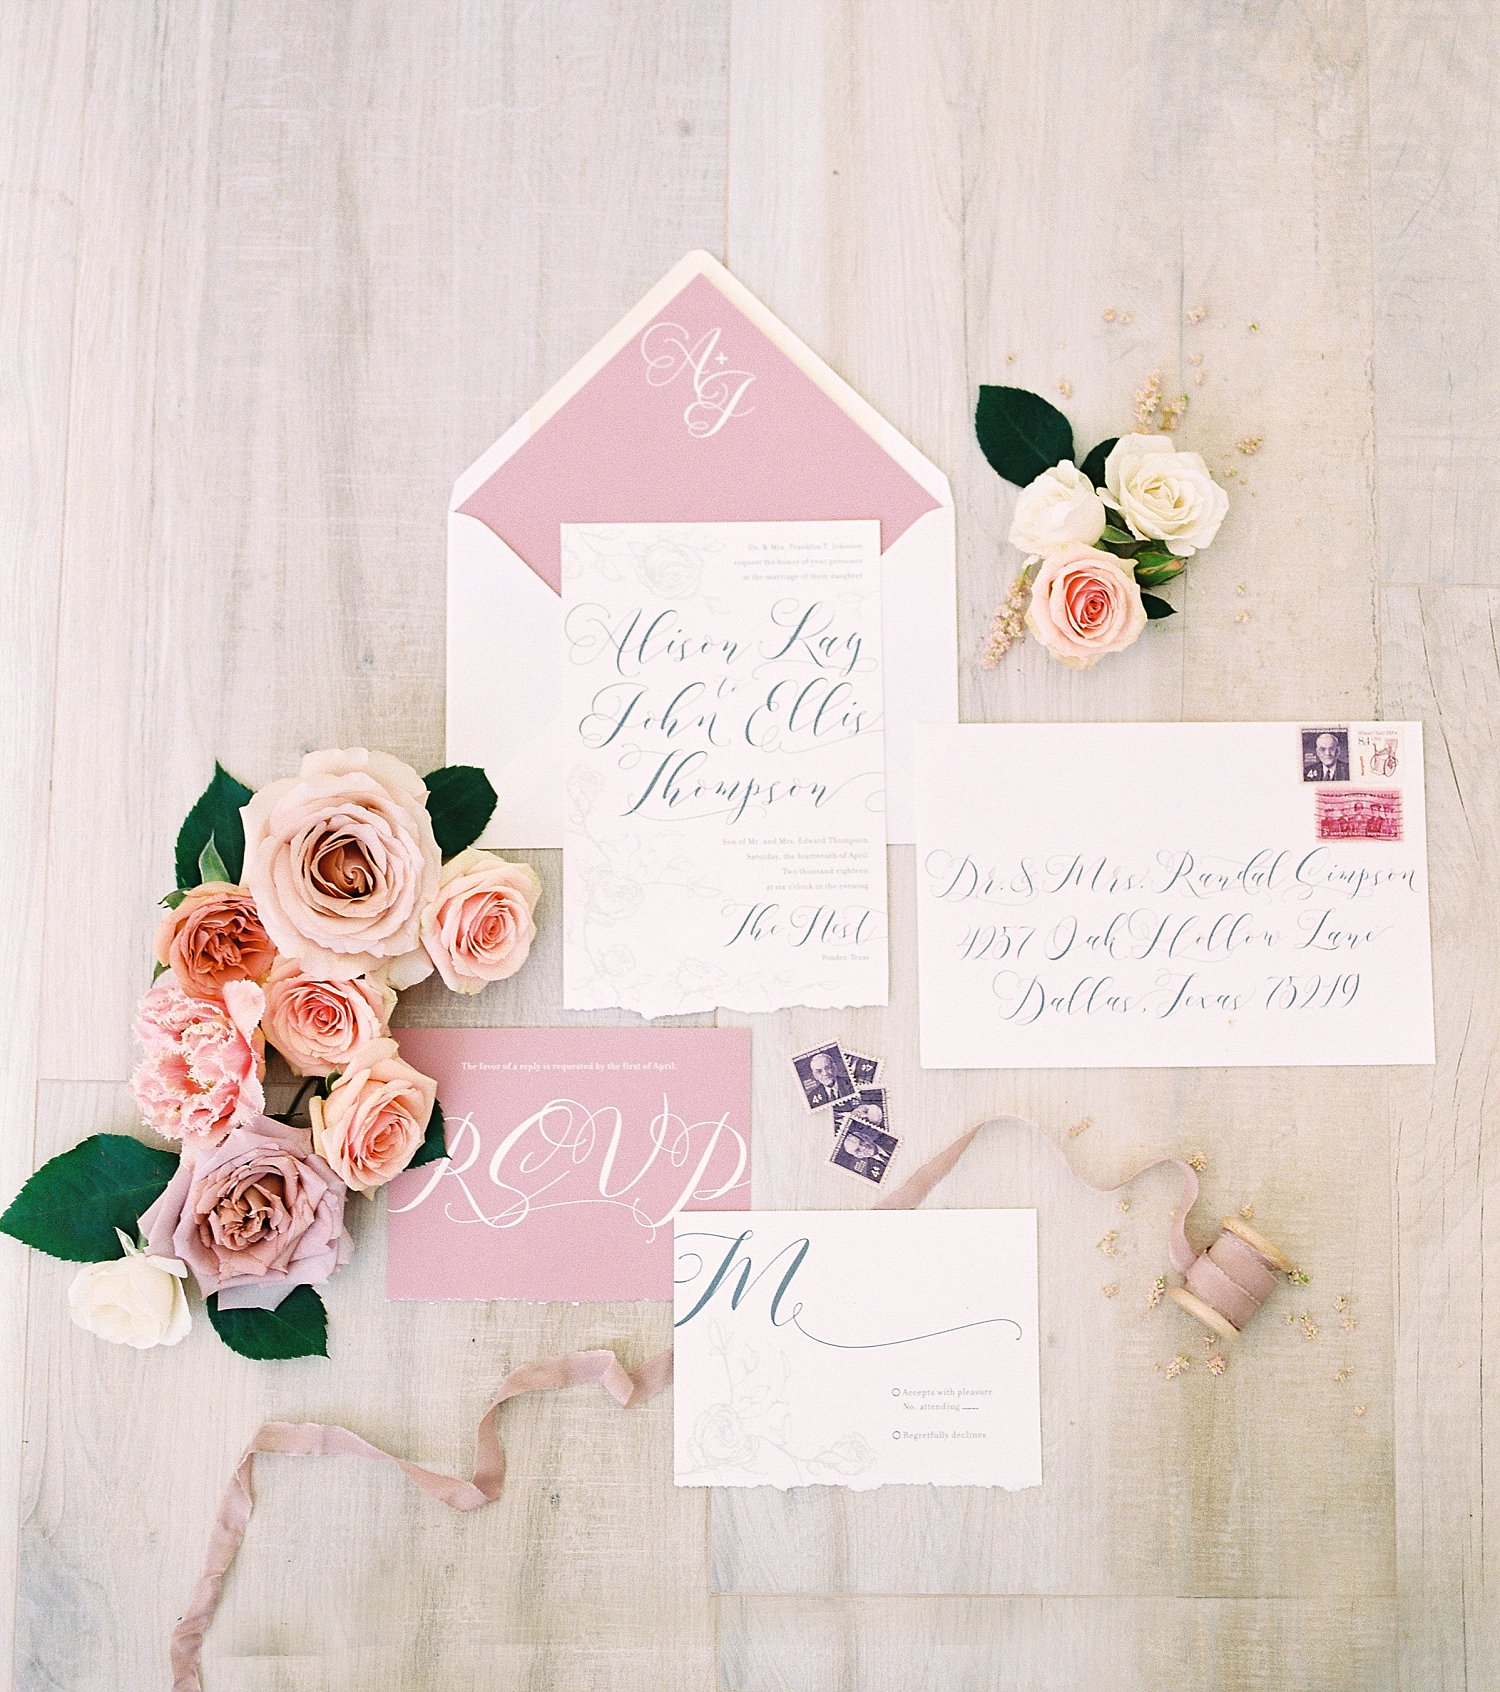 mauve and blush wedding invitation with roses